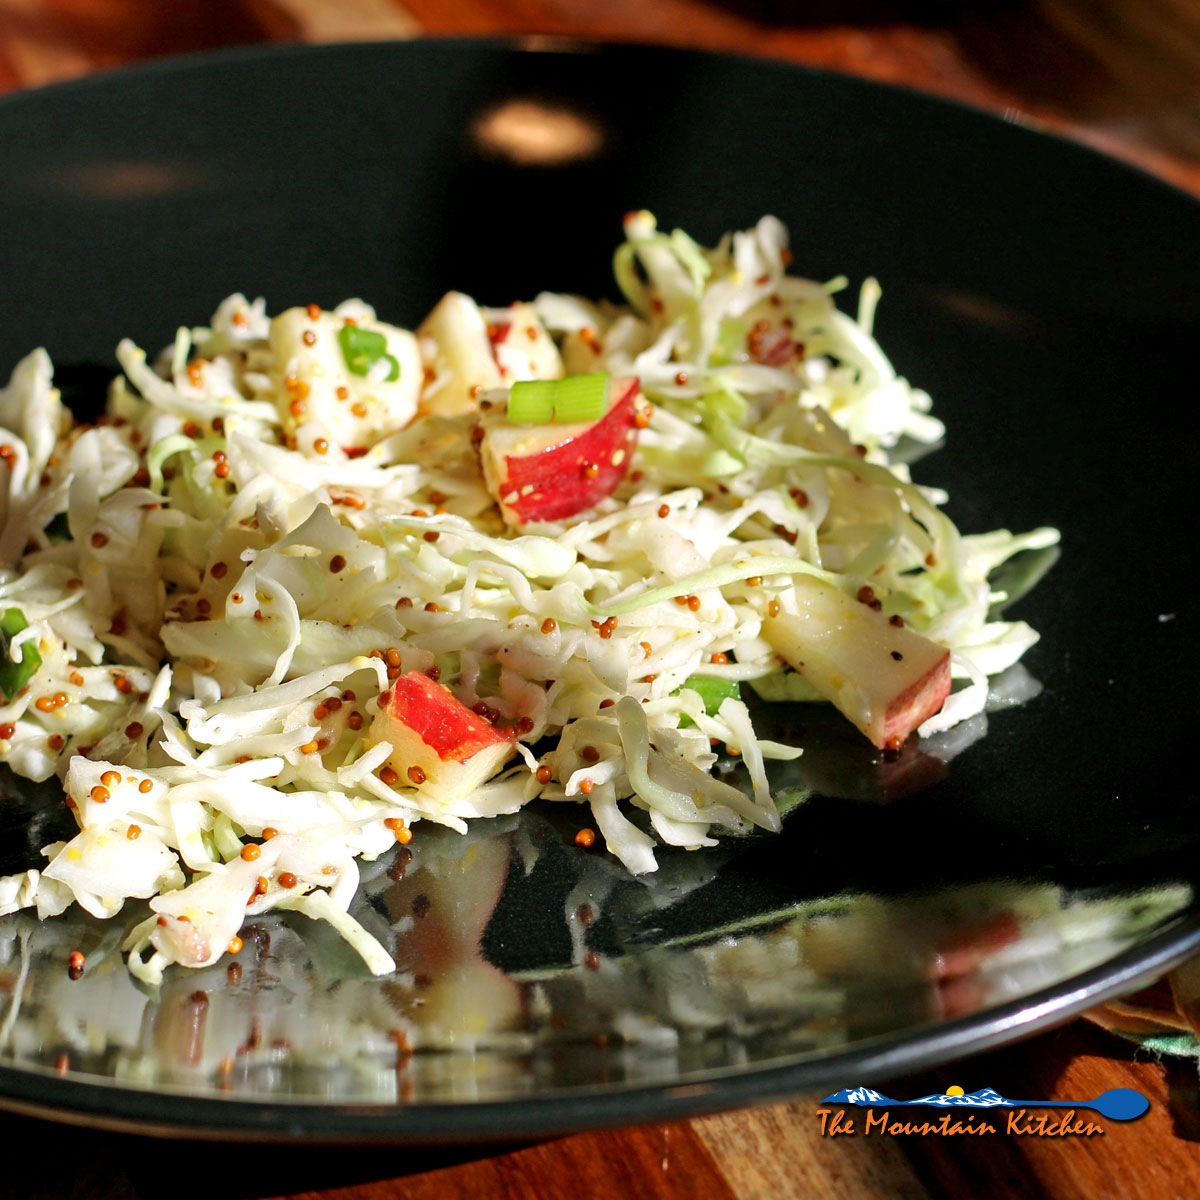 Apple-Cabbage Slaw with crunchy cabbage, crisp apples, and green onions tossed with a zesty mustard dressing, this colorful slaw makes a great side dish for any barbecue this summer.